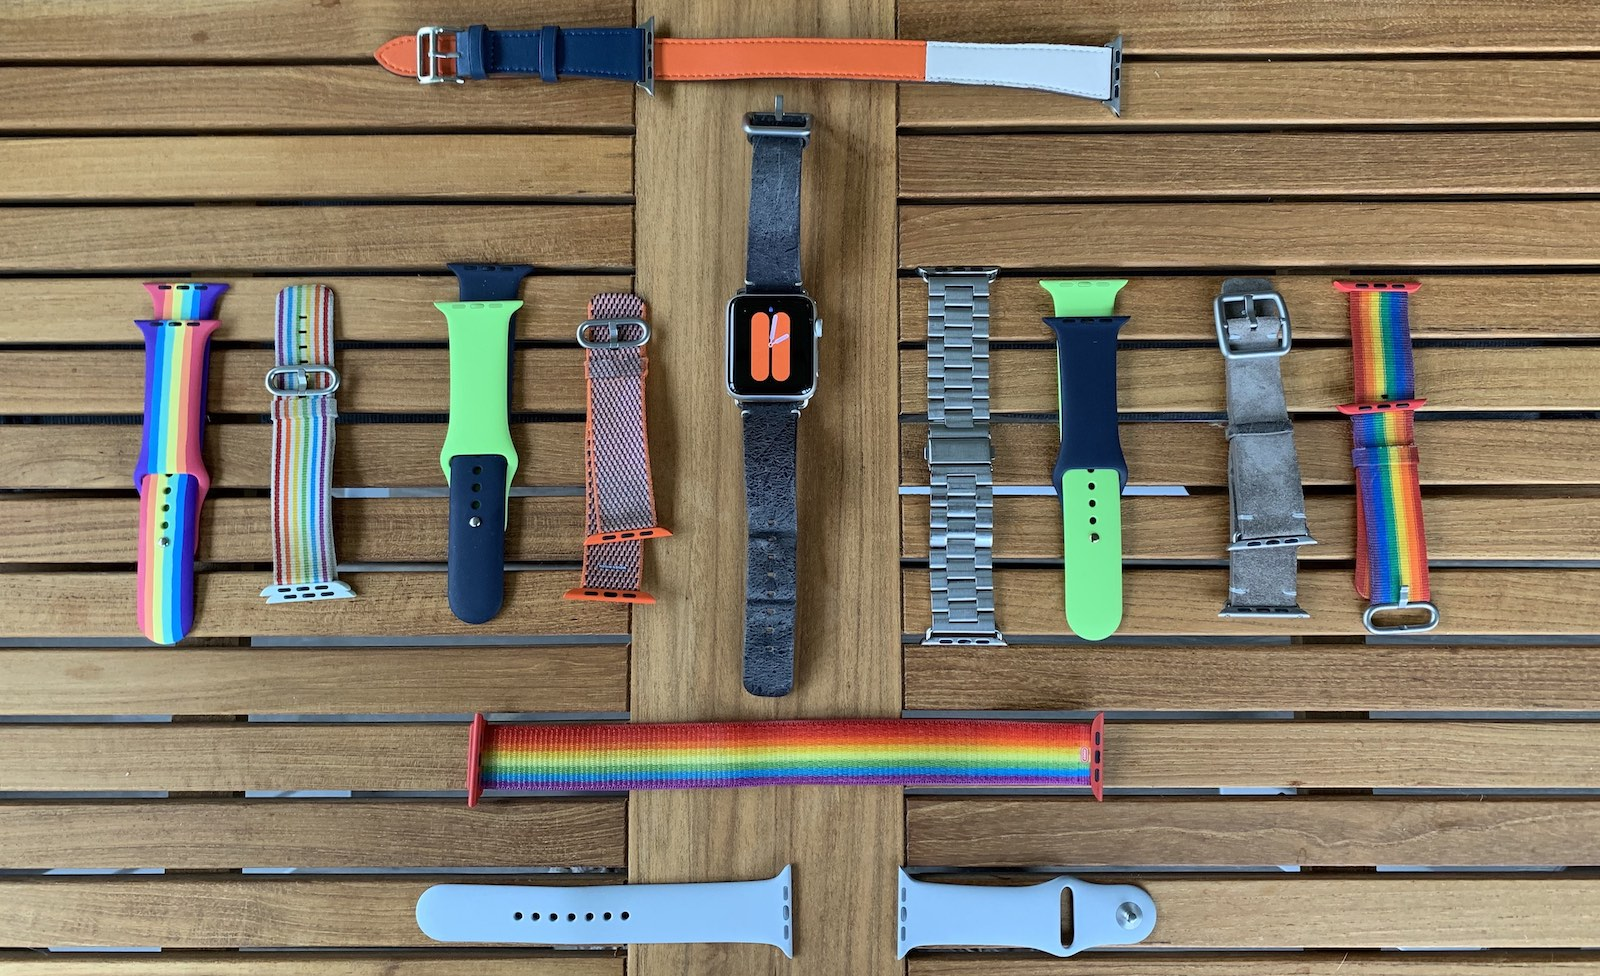 Watch bands, so many watch bands